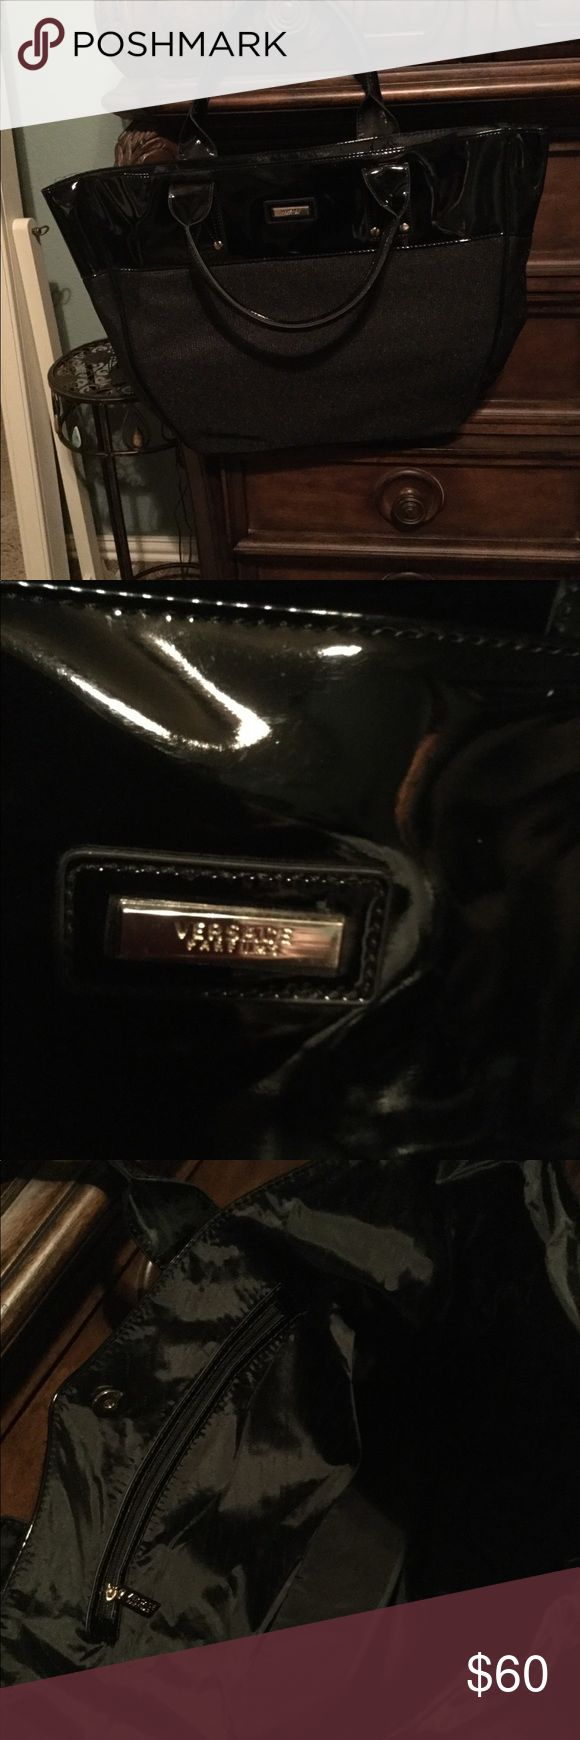 Oversized bag 16x16 Black Versace brand new with dust bag Versace Bags Totes